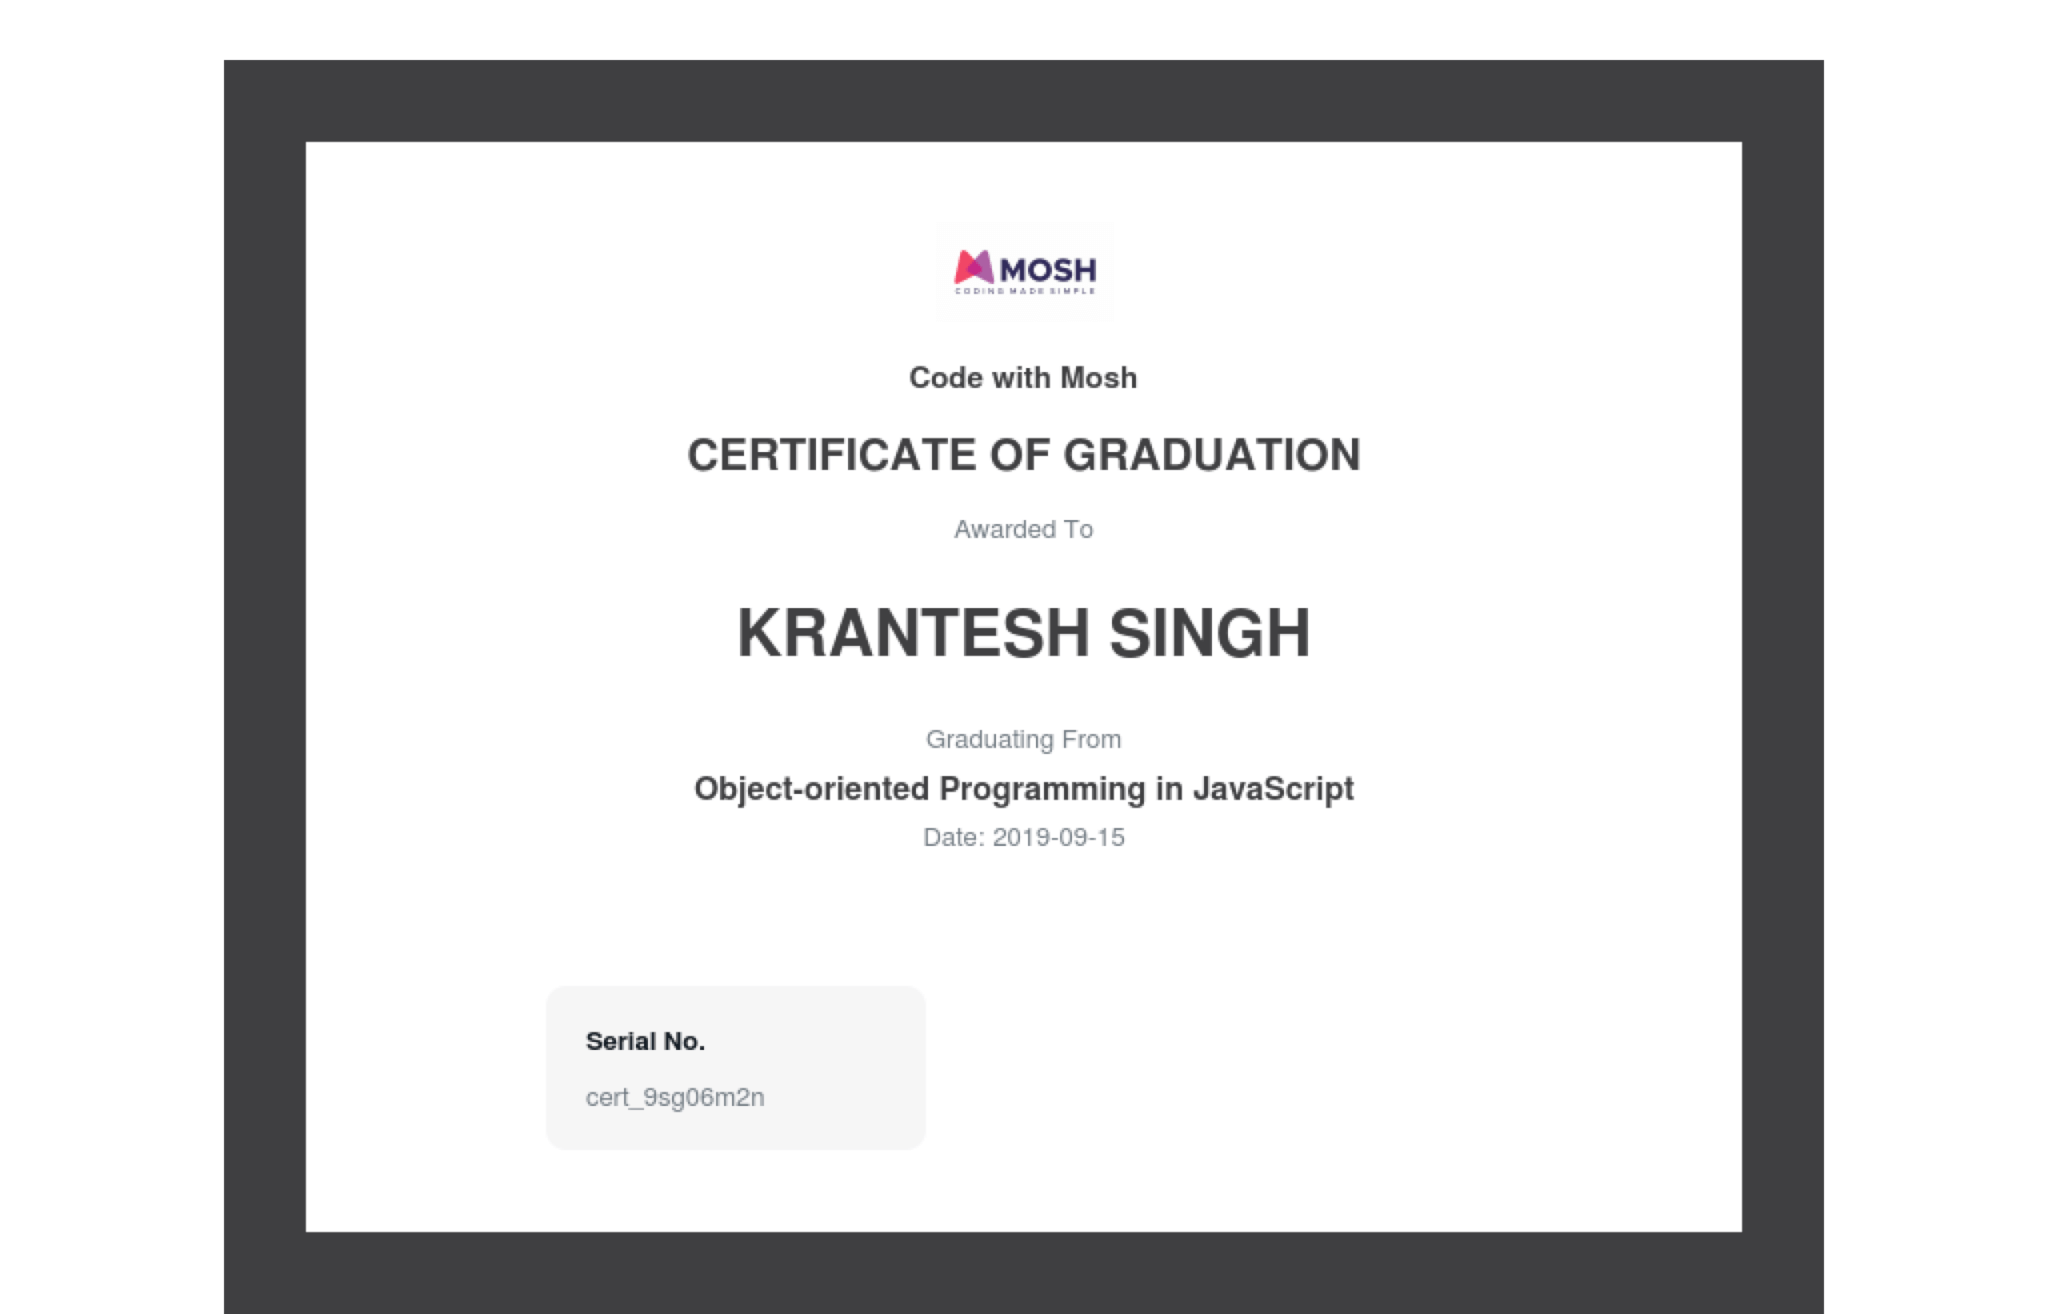 certificate-of-completion-for-object-oriented-programming-in-javascript